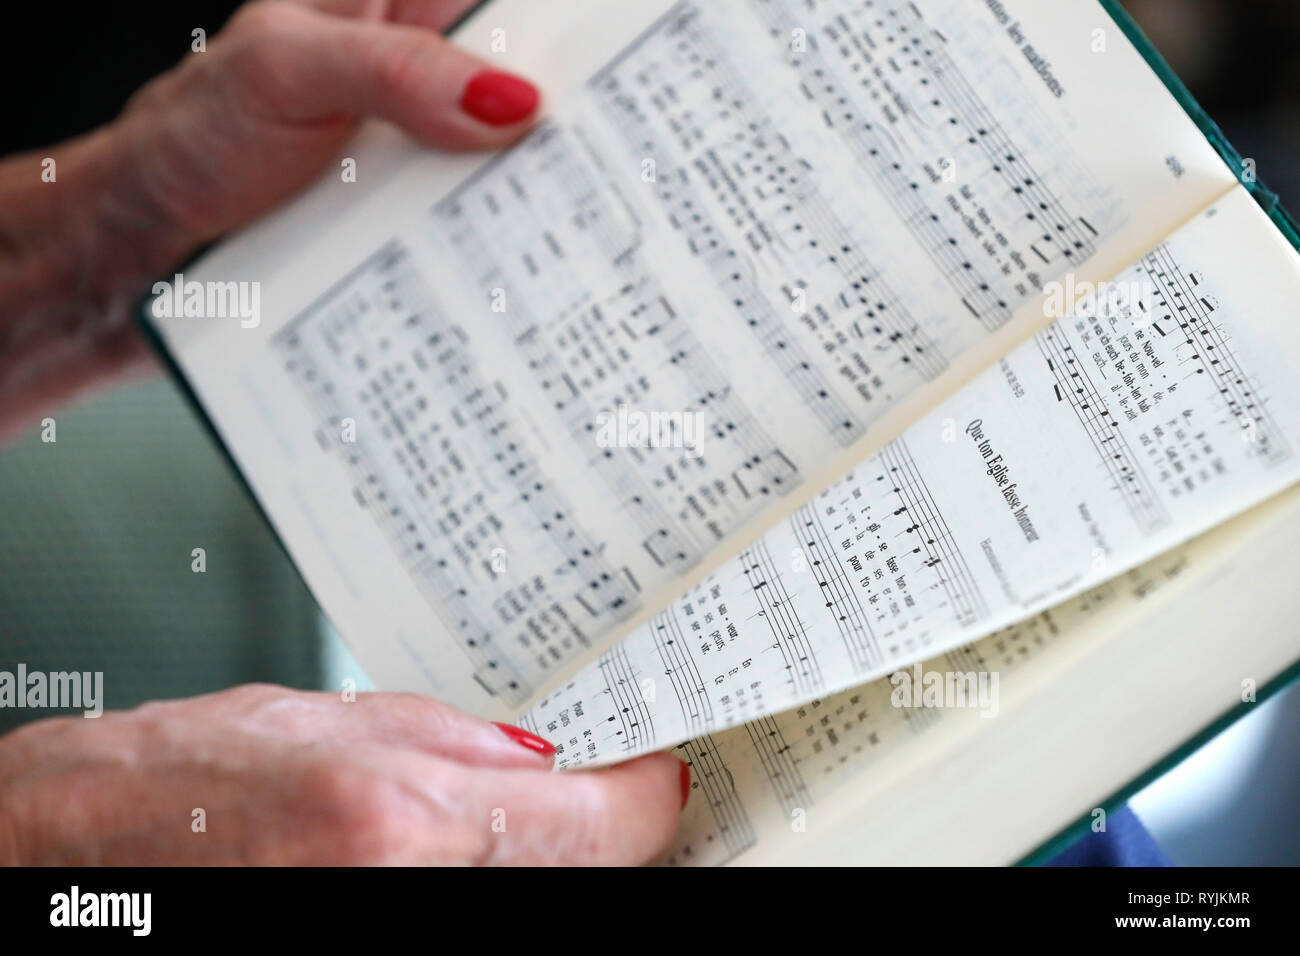 Woman reading Alleluia, a protestant Praise and Worship Songbook. - Stock Image